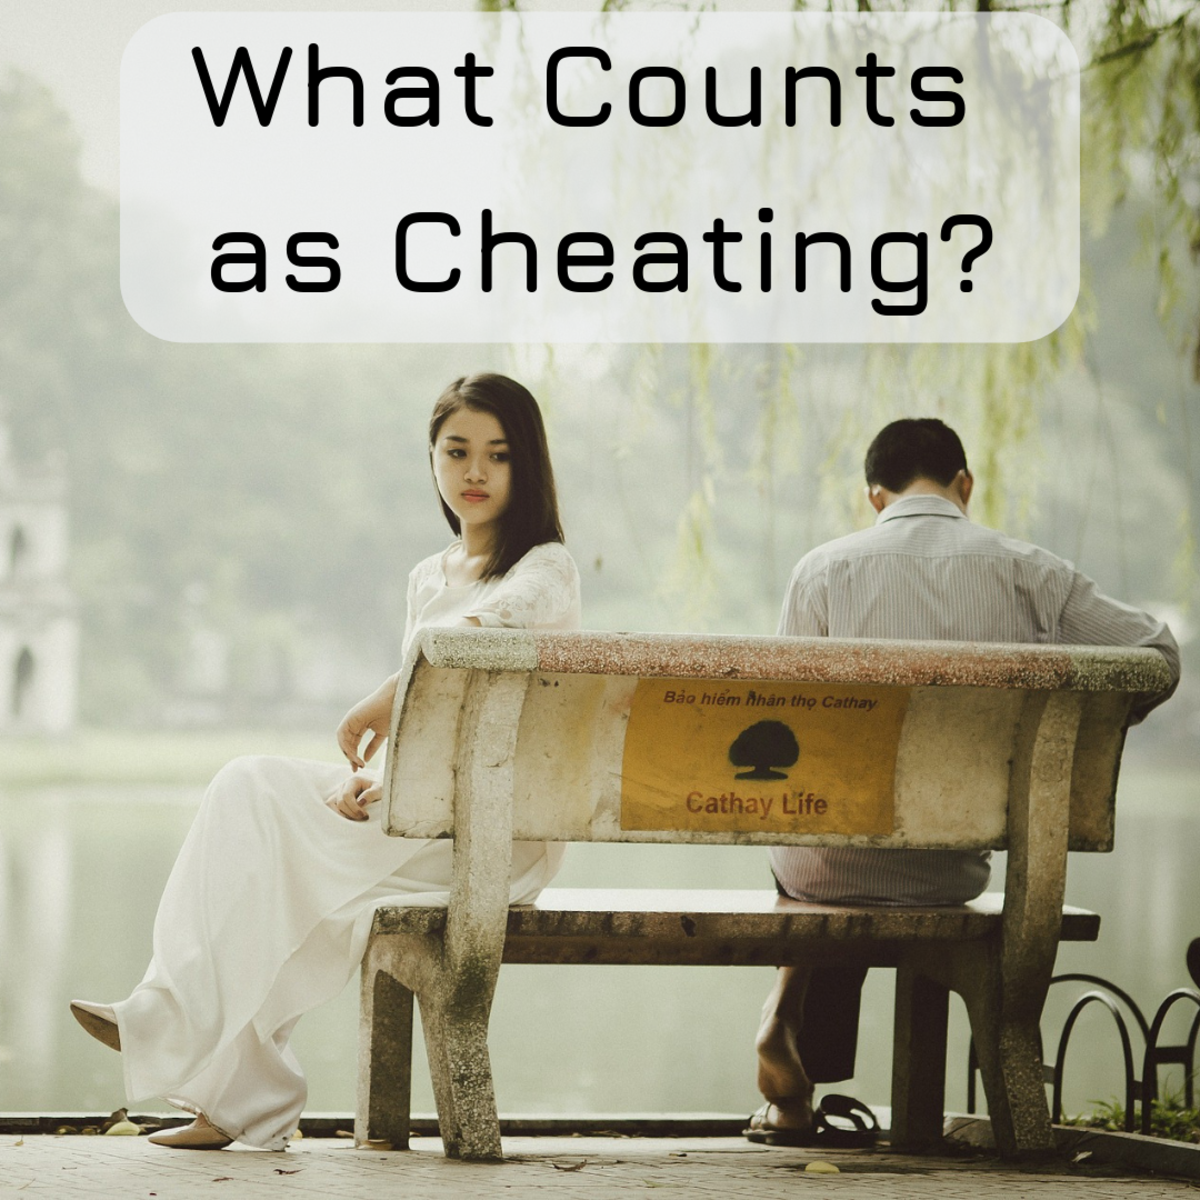 Men and women share different opinions on what is considered cheating in a relationship.